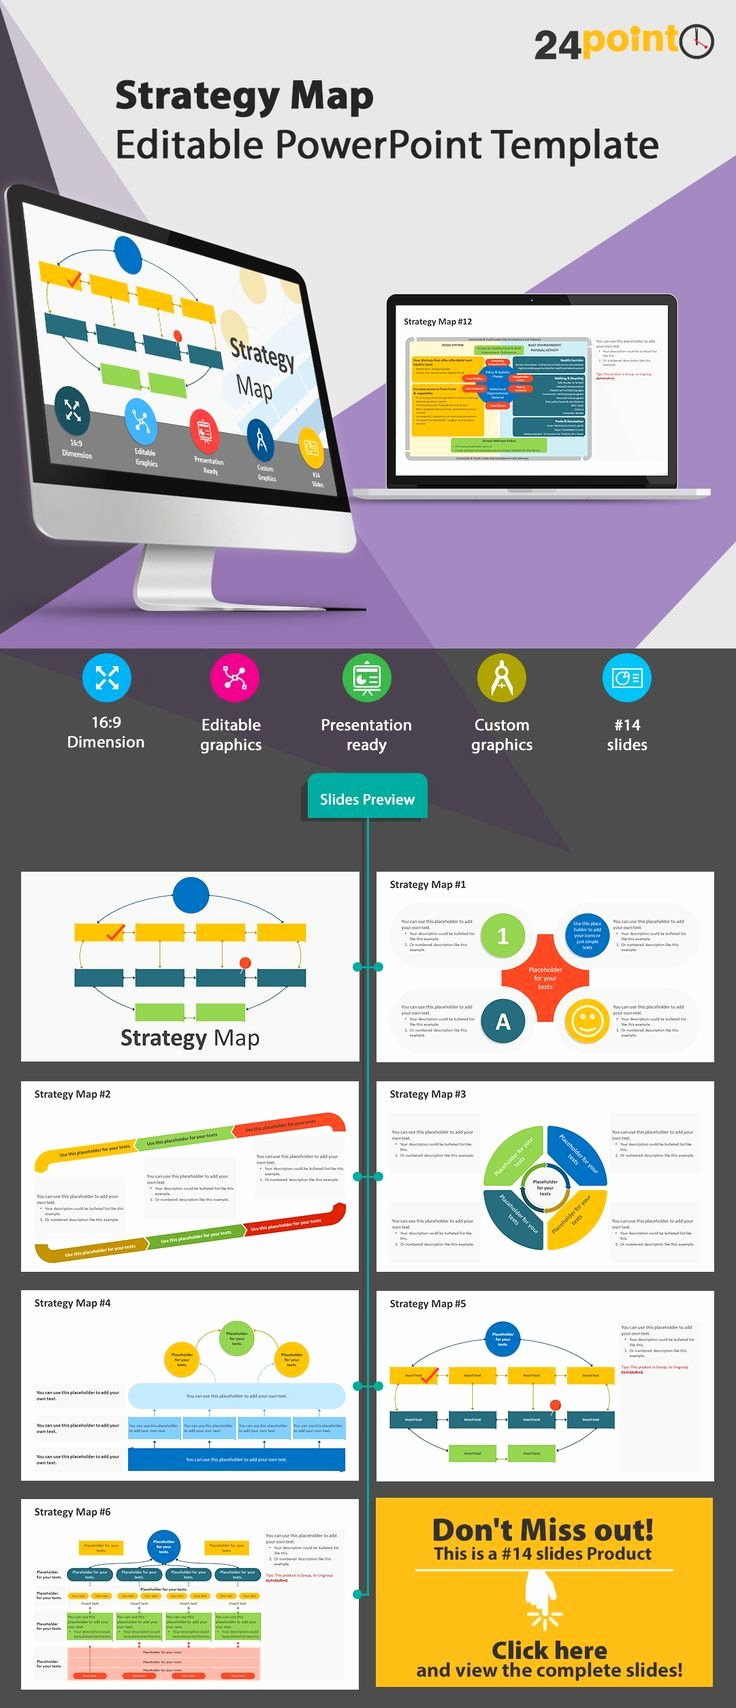 Strategic Group Mapping Template Inspirational 136 Best Images About Business Concepts & Models